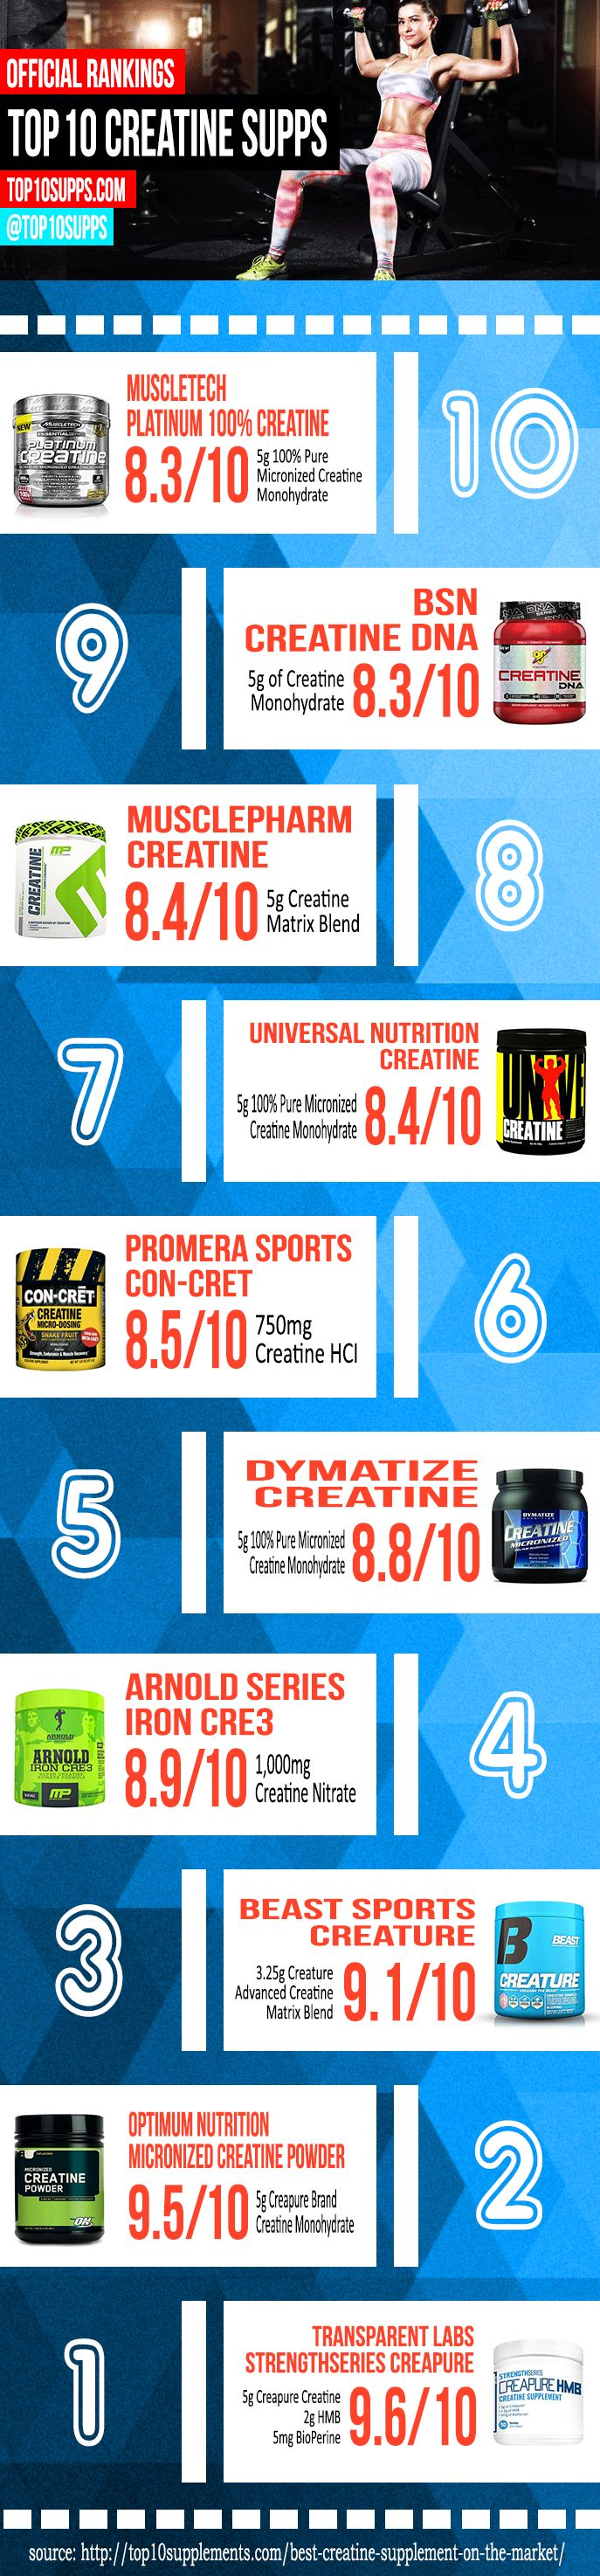 Top 10 Creatine Supplements Infographic